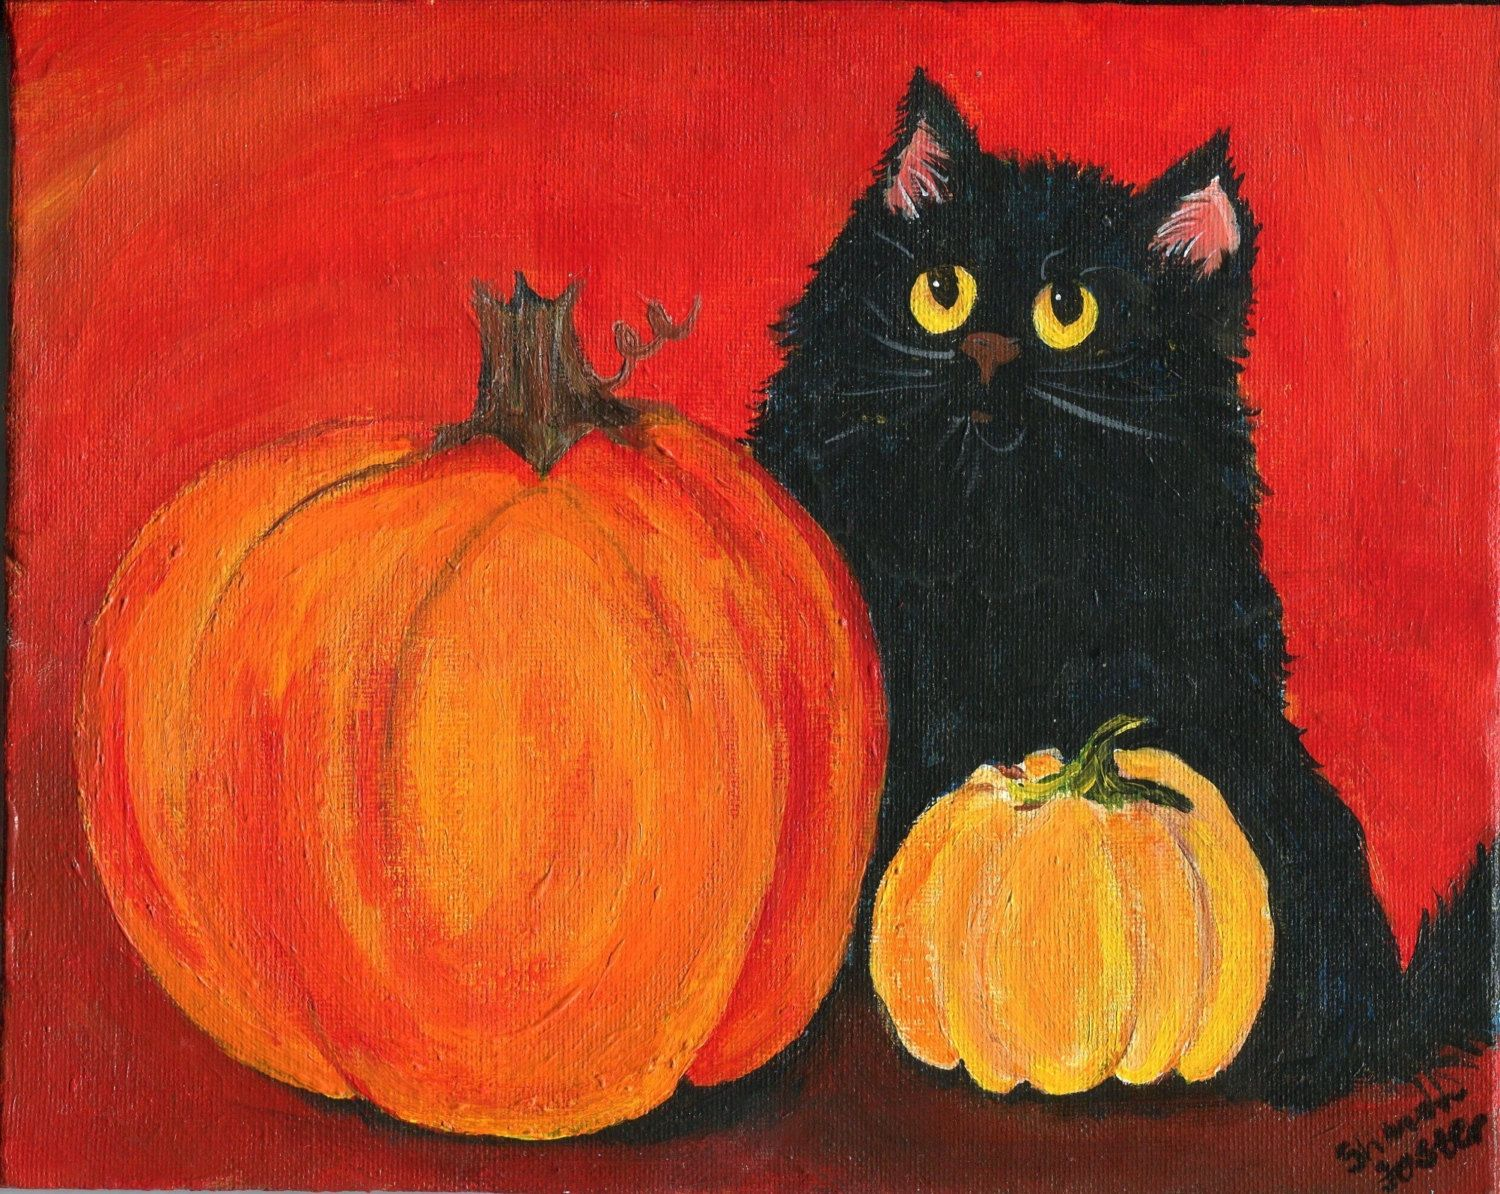 Small Pumpkin Painting Black Cat Pumpkin 5 X 7 Print From My Acrylic Painting Canvas Art